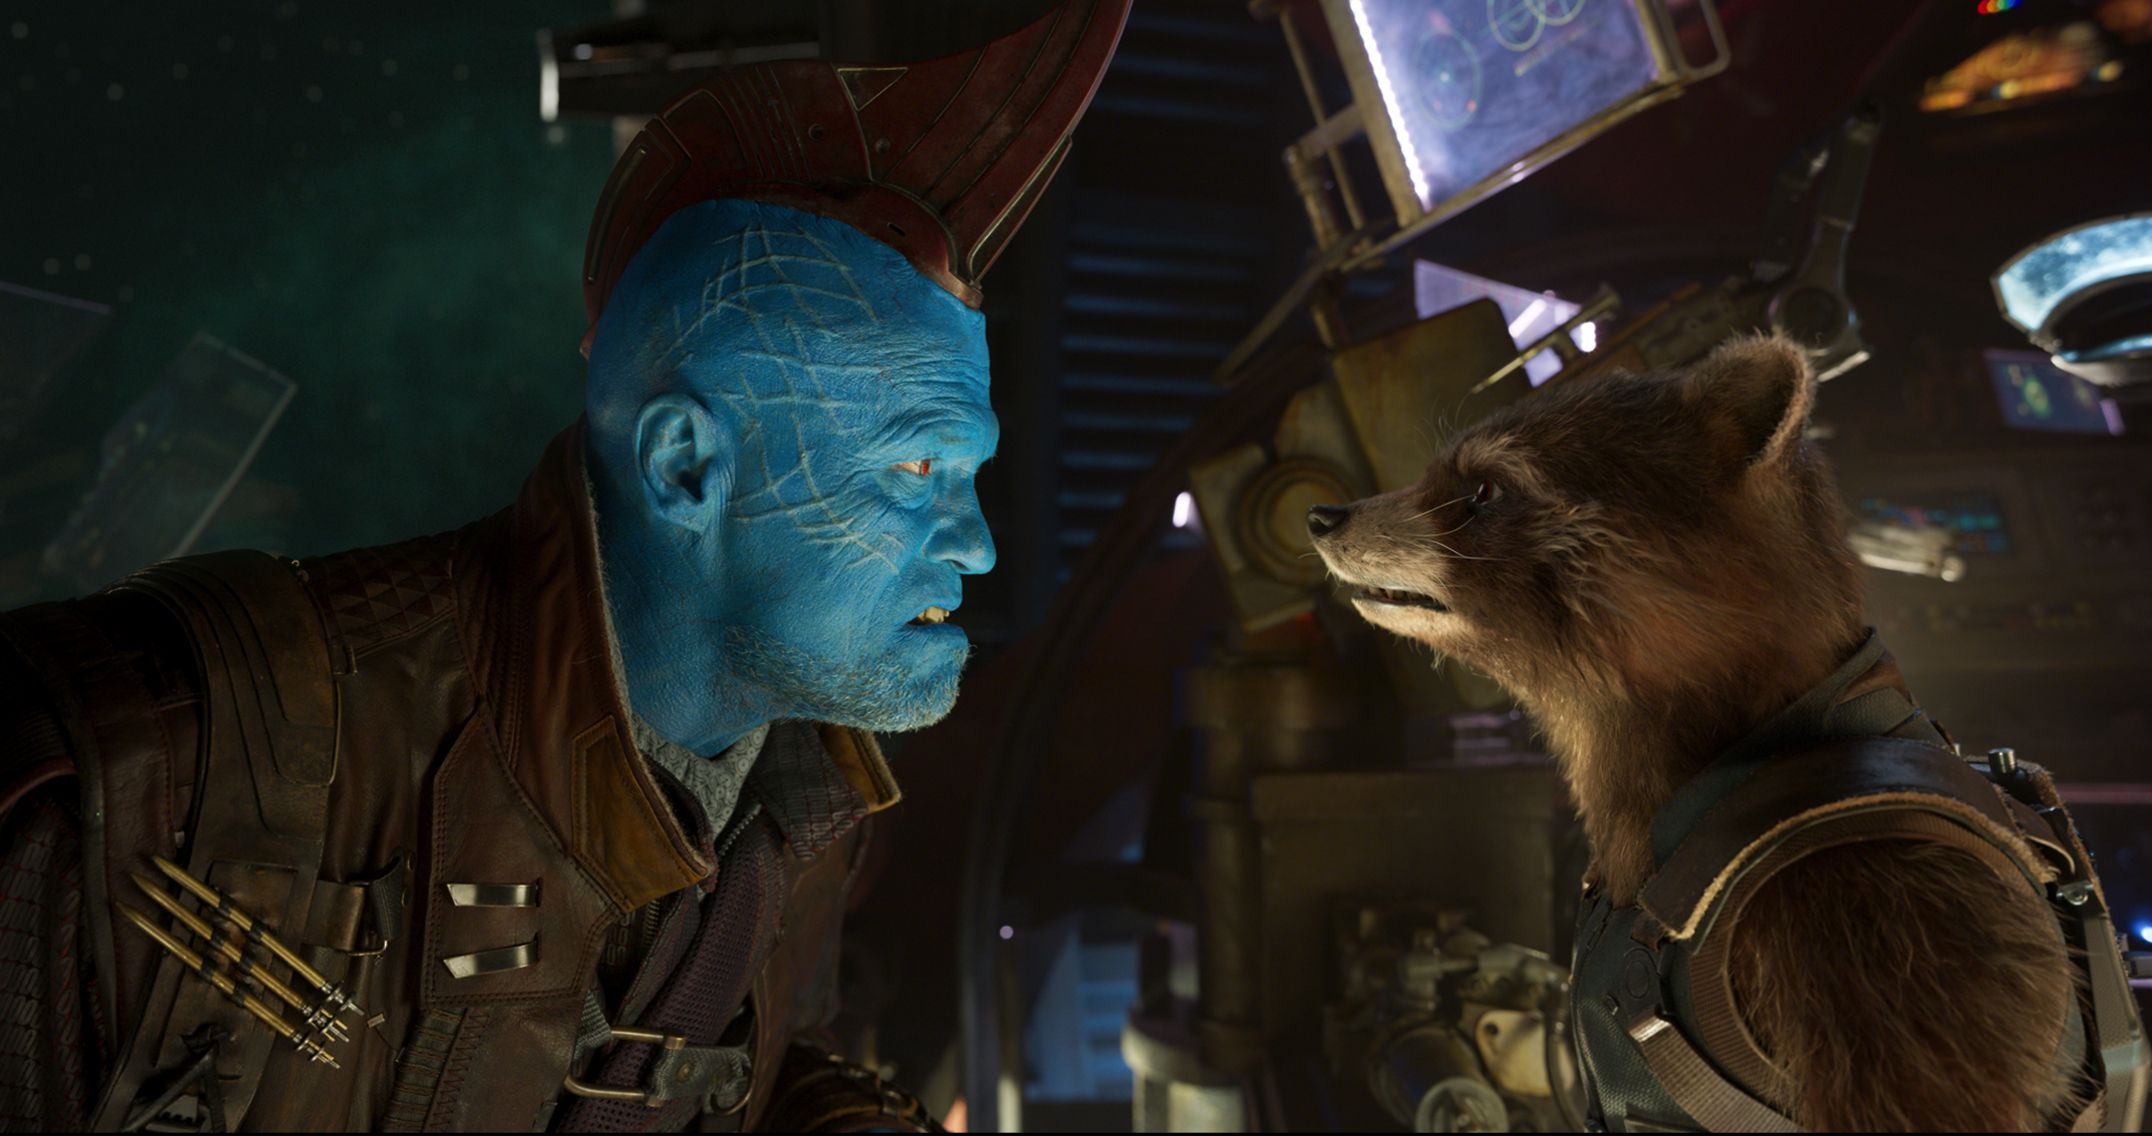 Guardians of the Galaxy 2 After-Credits Scenes: There Are 5 the Most For